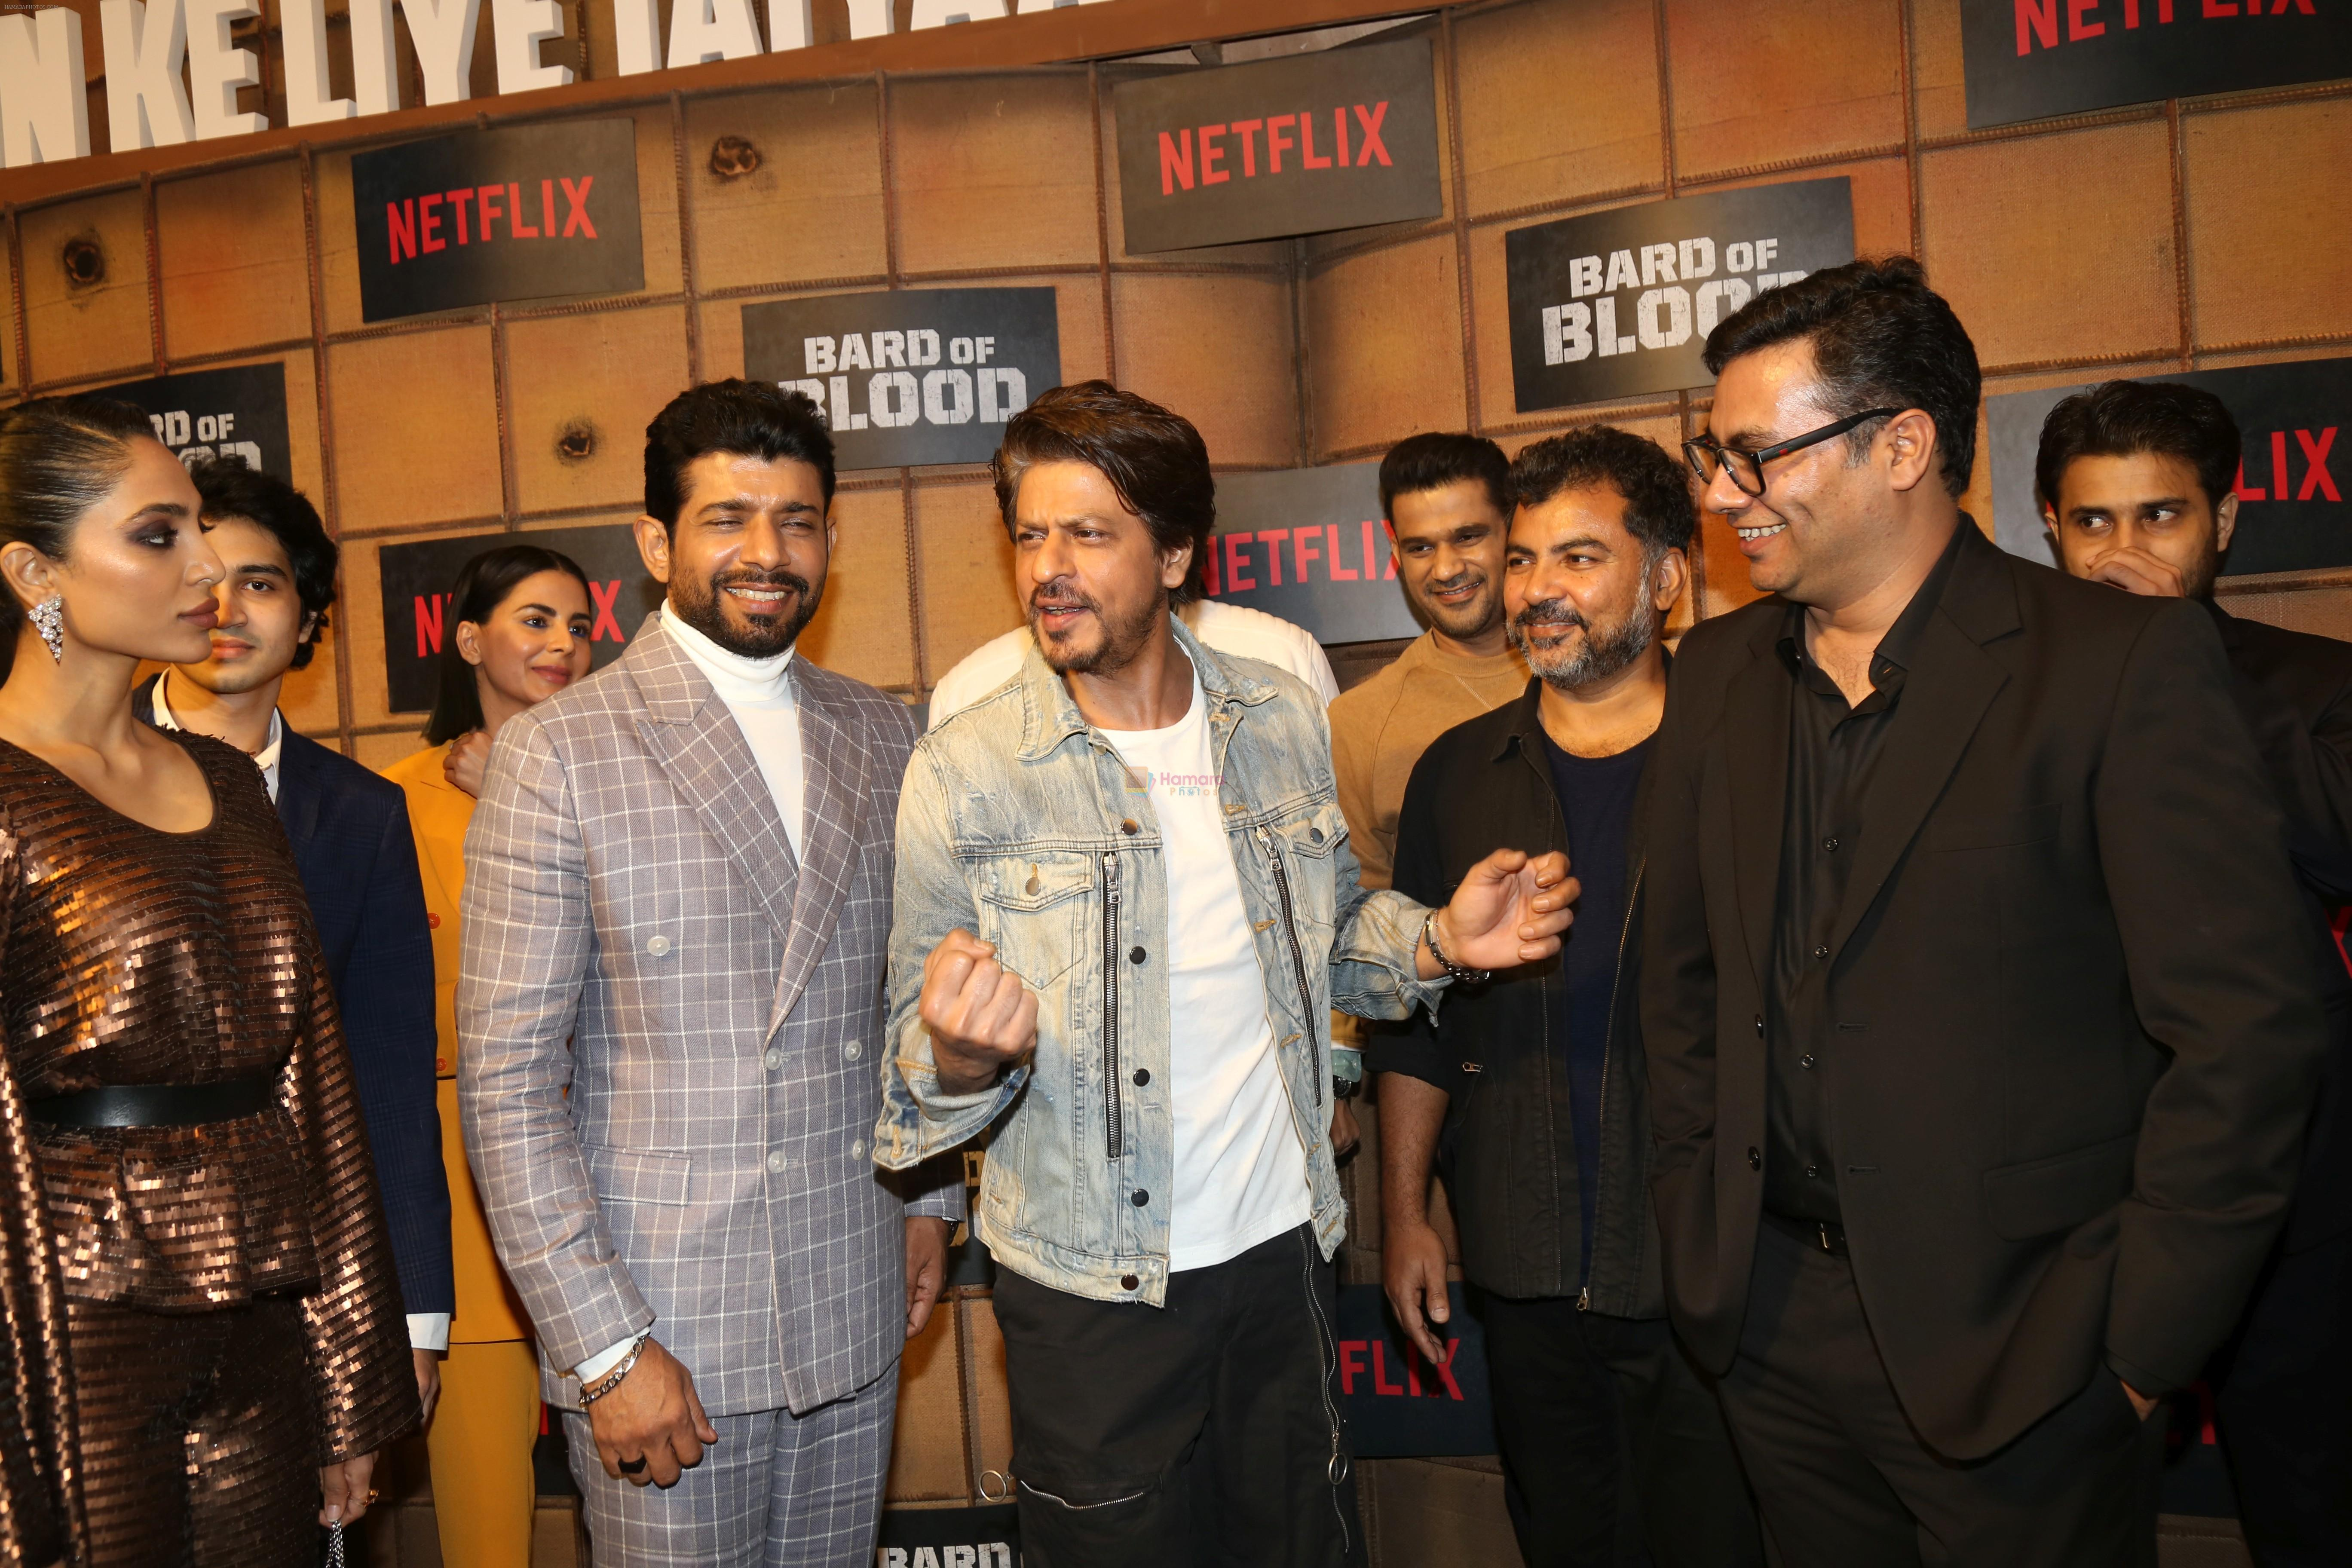 Shah Rukh Khan at the screening Netflix Bard of Blood in pvr Phoenix lower parel on 24th Sept 2019